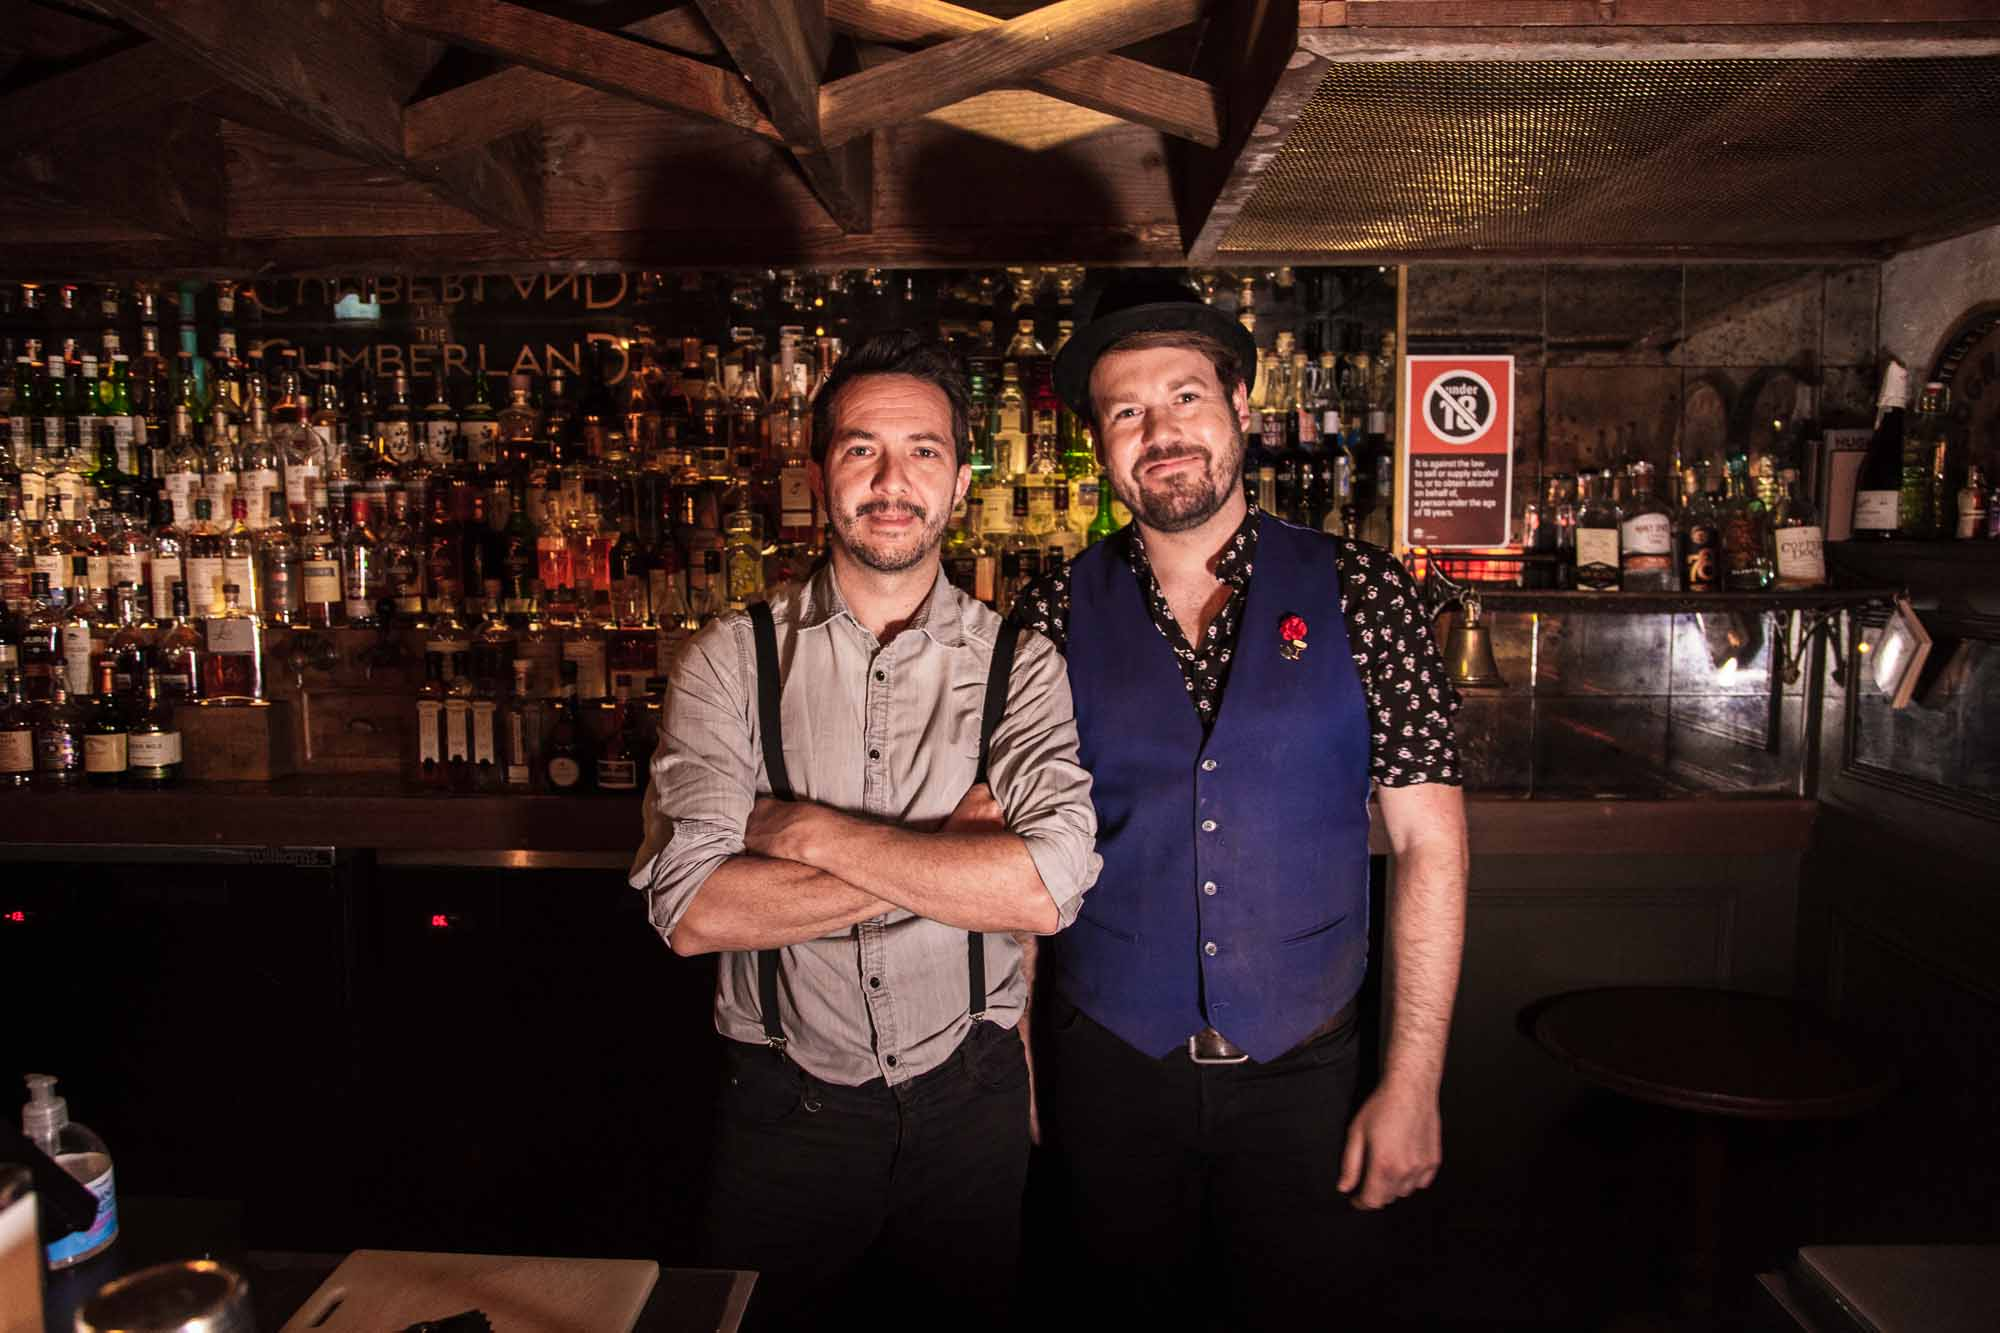 Bar manager Petr Dvoracek and The Cumberland co-owner Pete Ehemann. Photo: Boothby